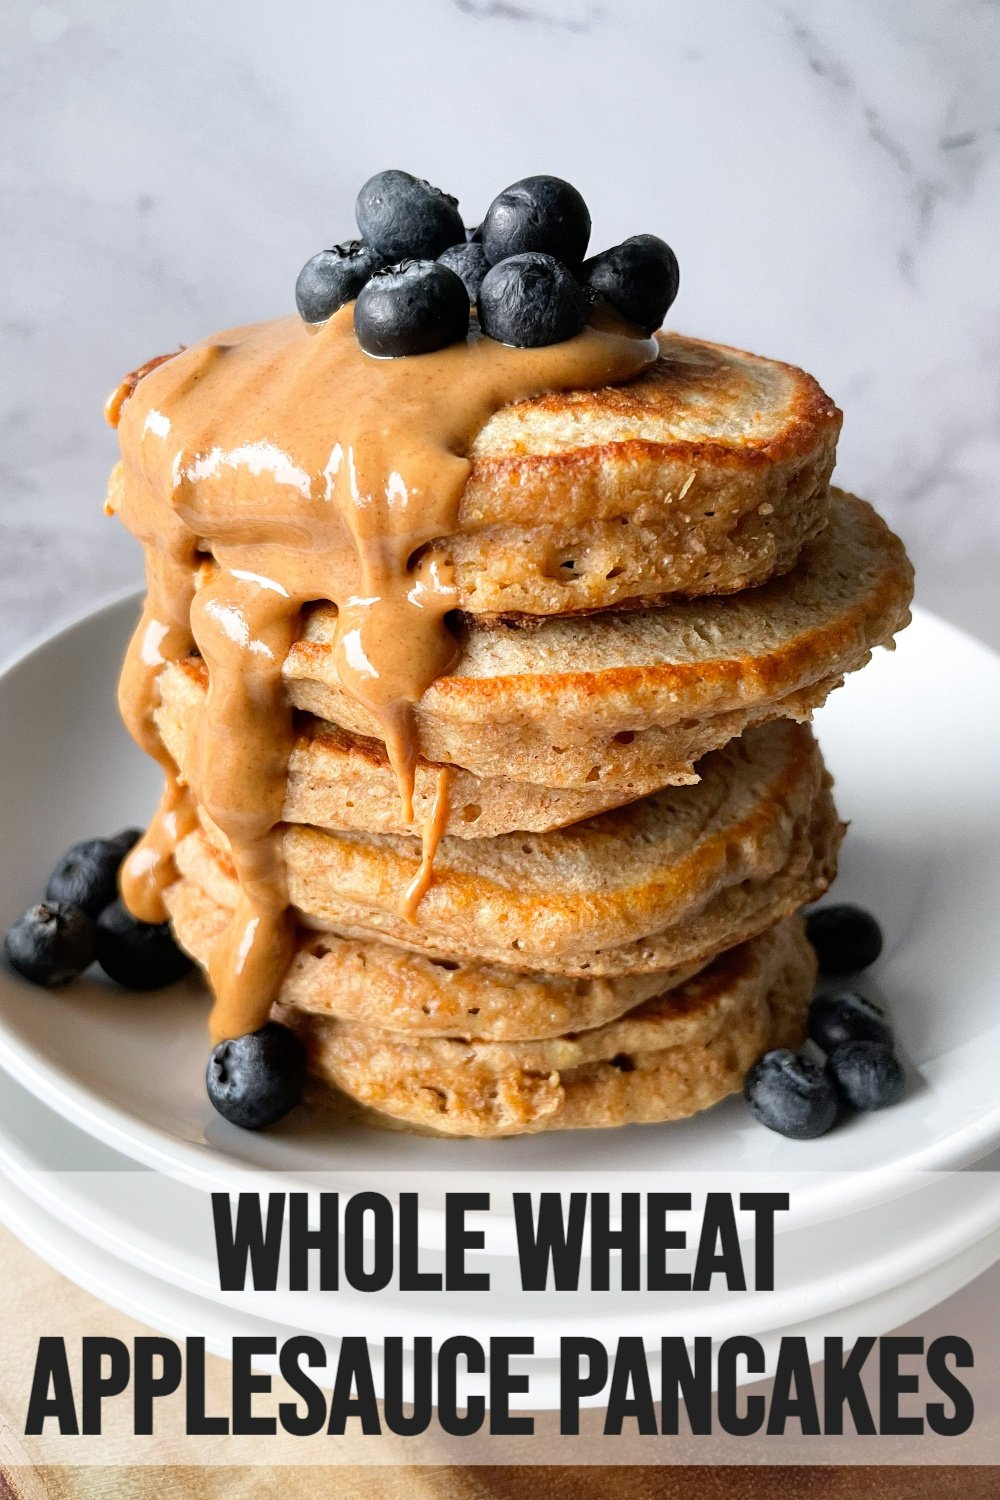 fluffy stacked whole wheat pancakes on plate with peanut butter and blueberries with text overlay